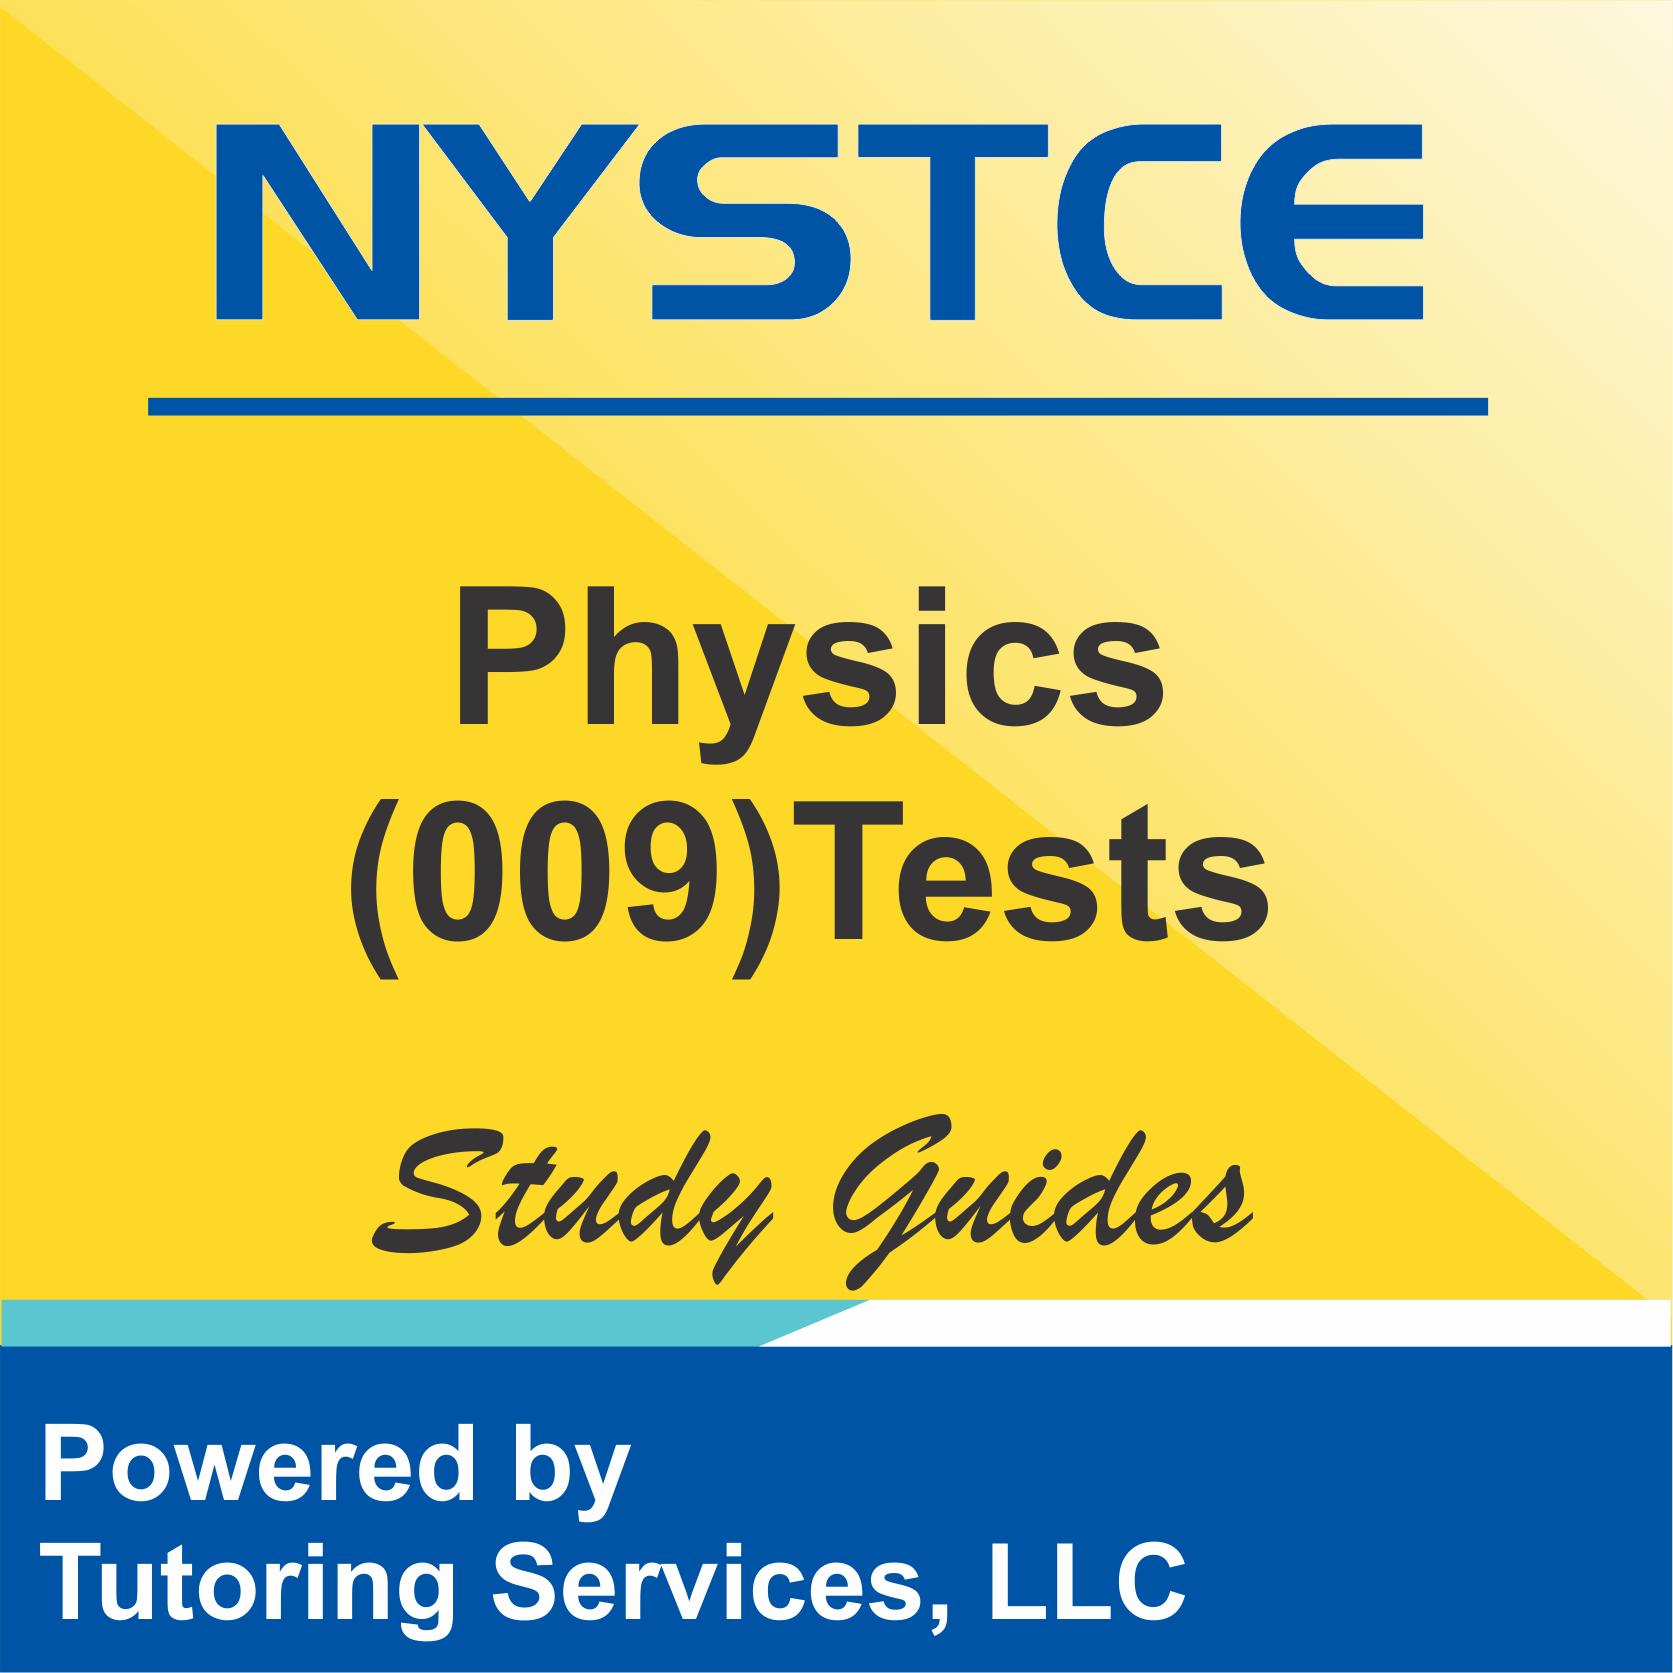 NYSTCE New York Licensure Test Information for Physics 009